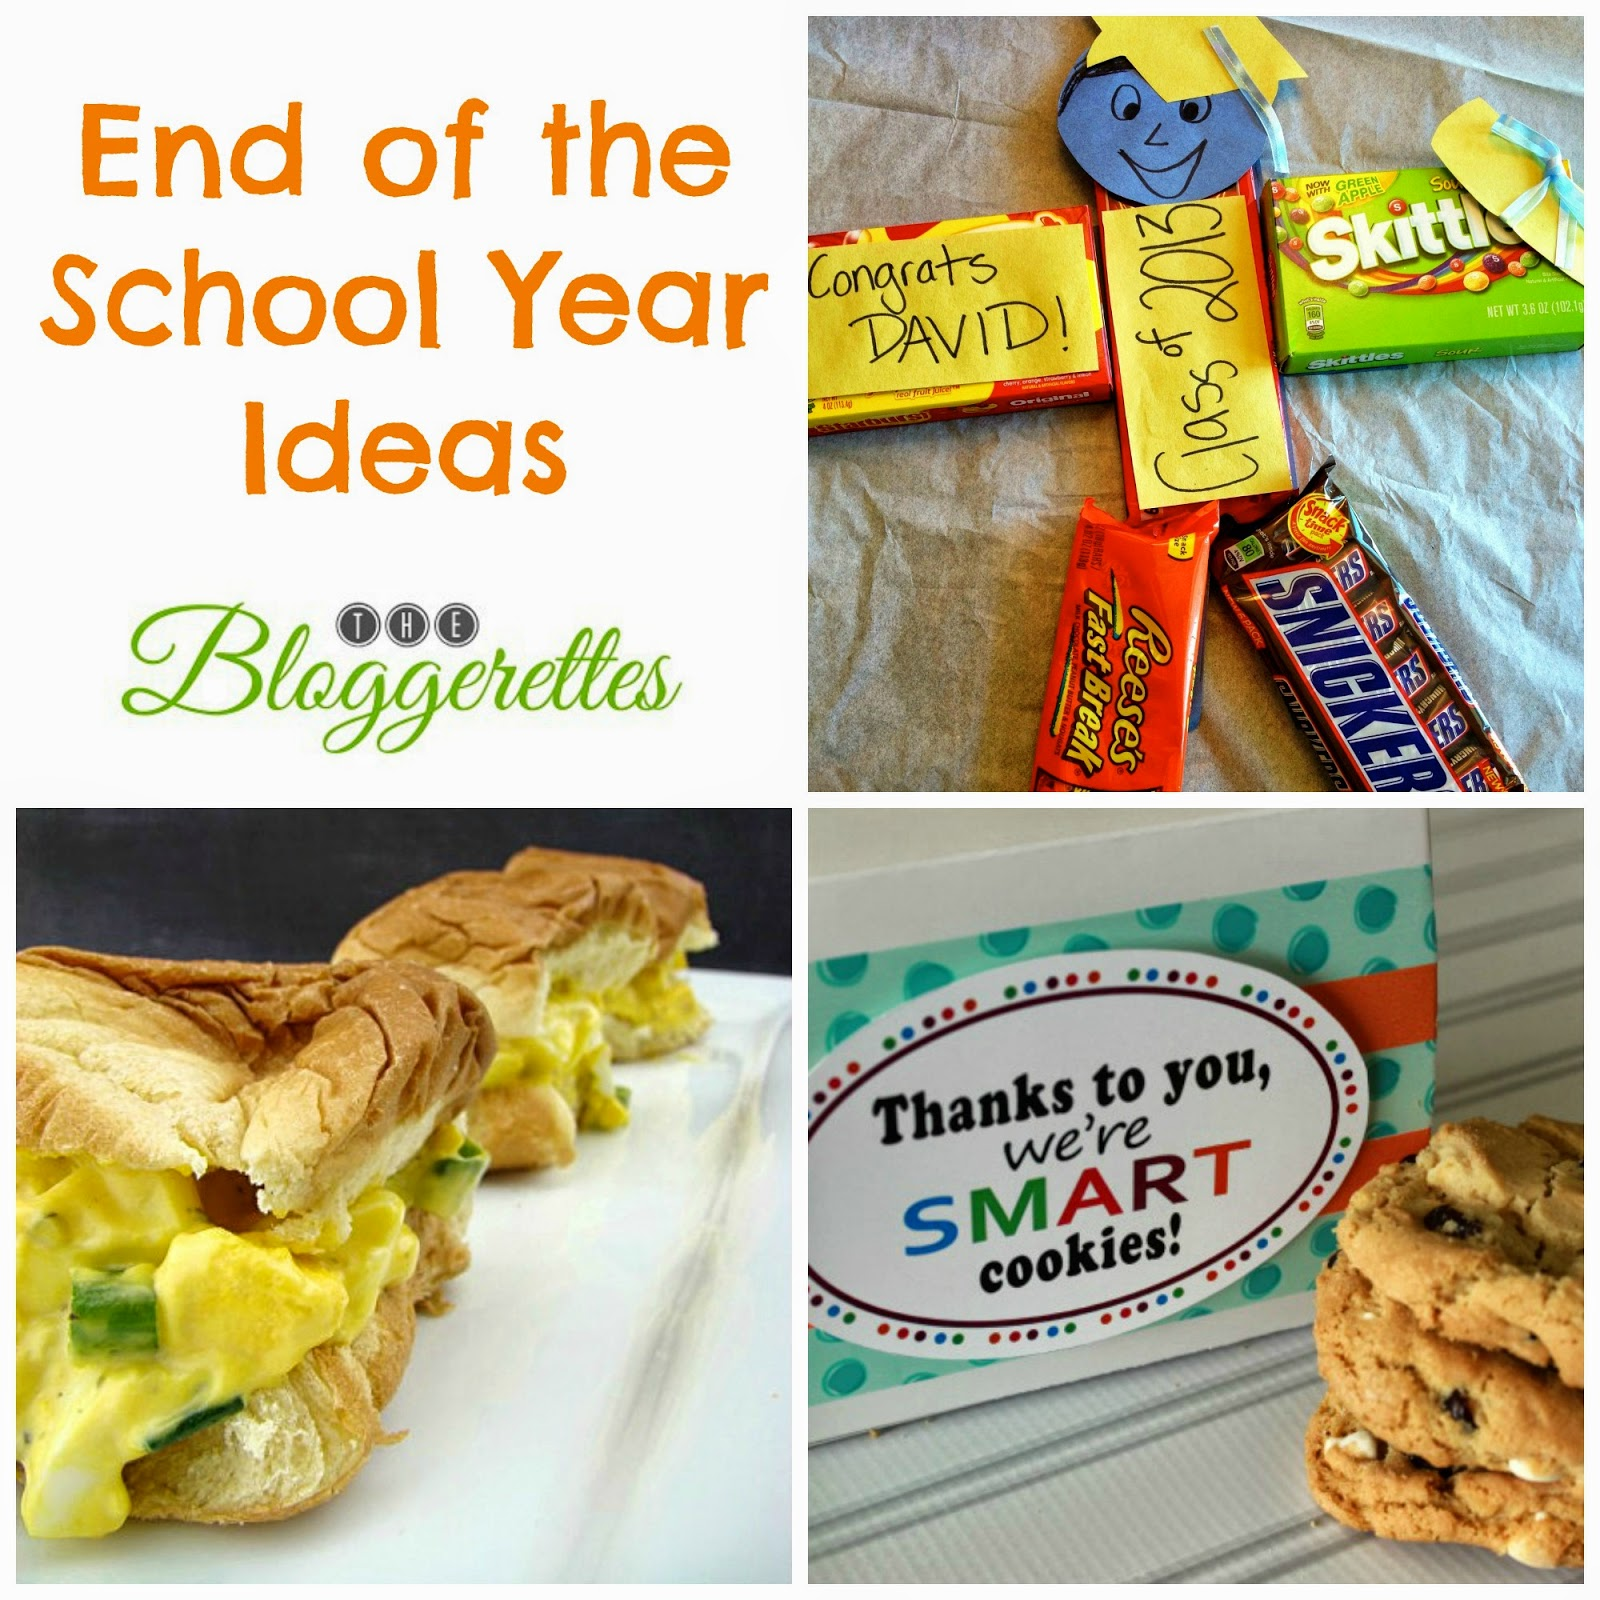 grad+collage+2 Smart Cookies   Teacher Gift Ideas with Free Printable